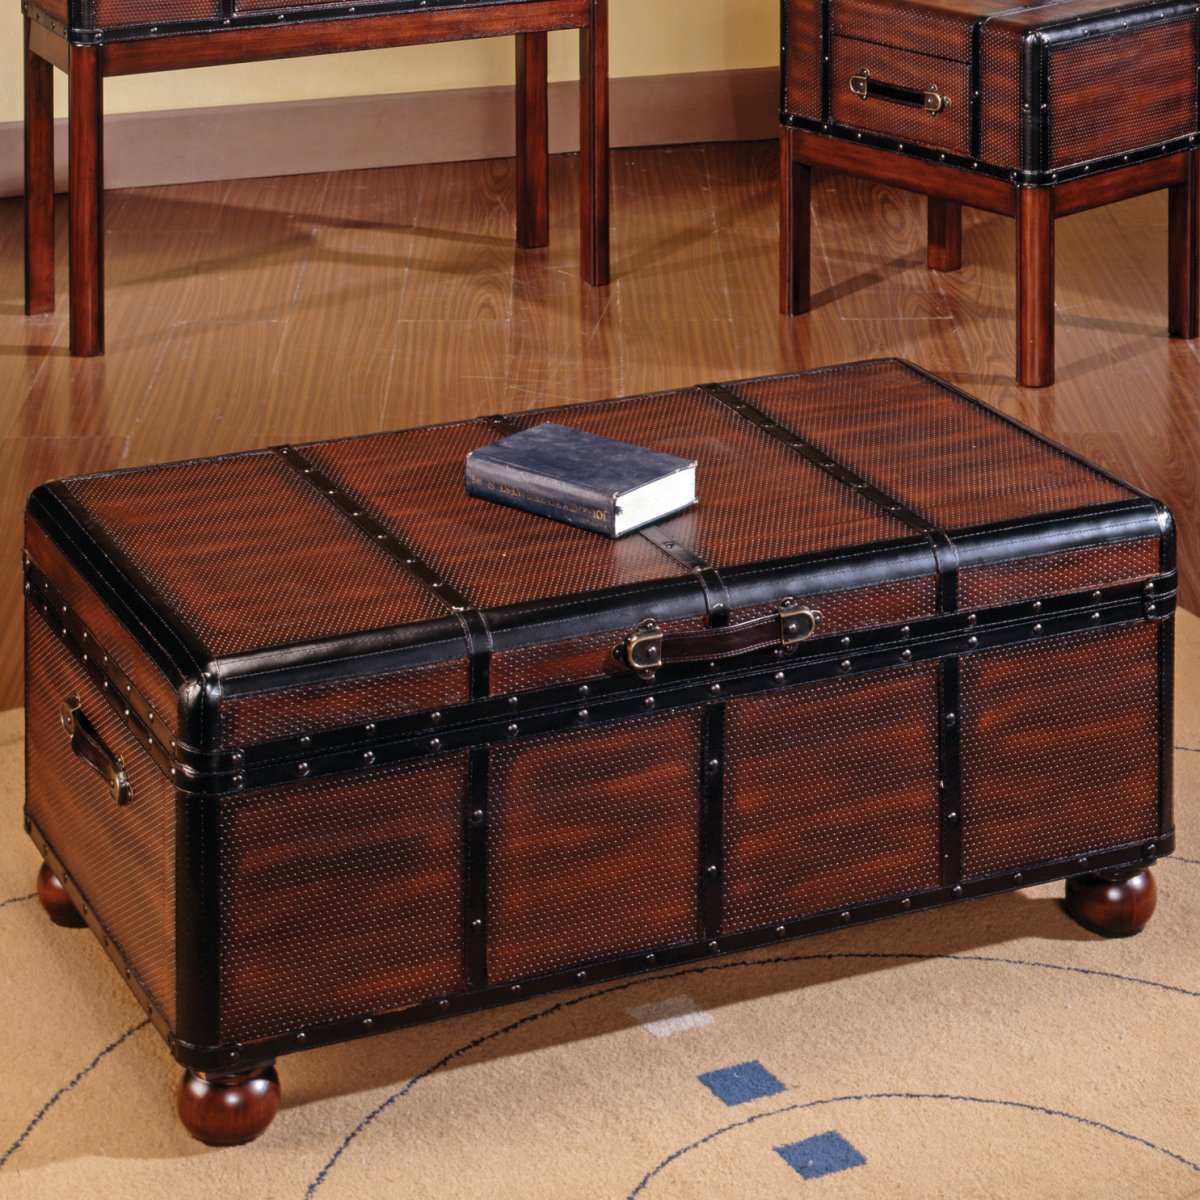 How To Build A Trunk Coffee Table: trunk coffee tables